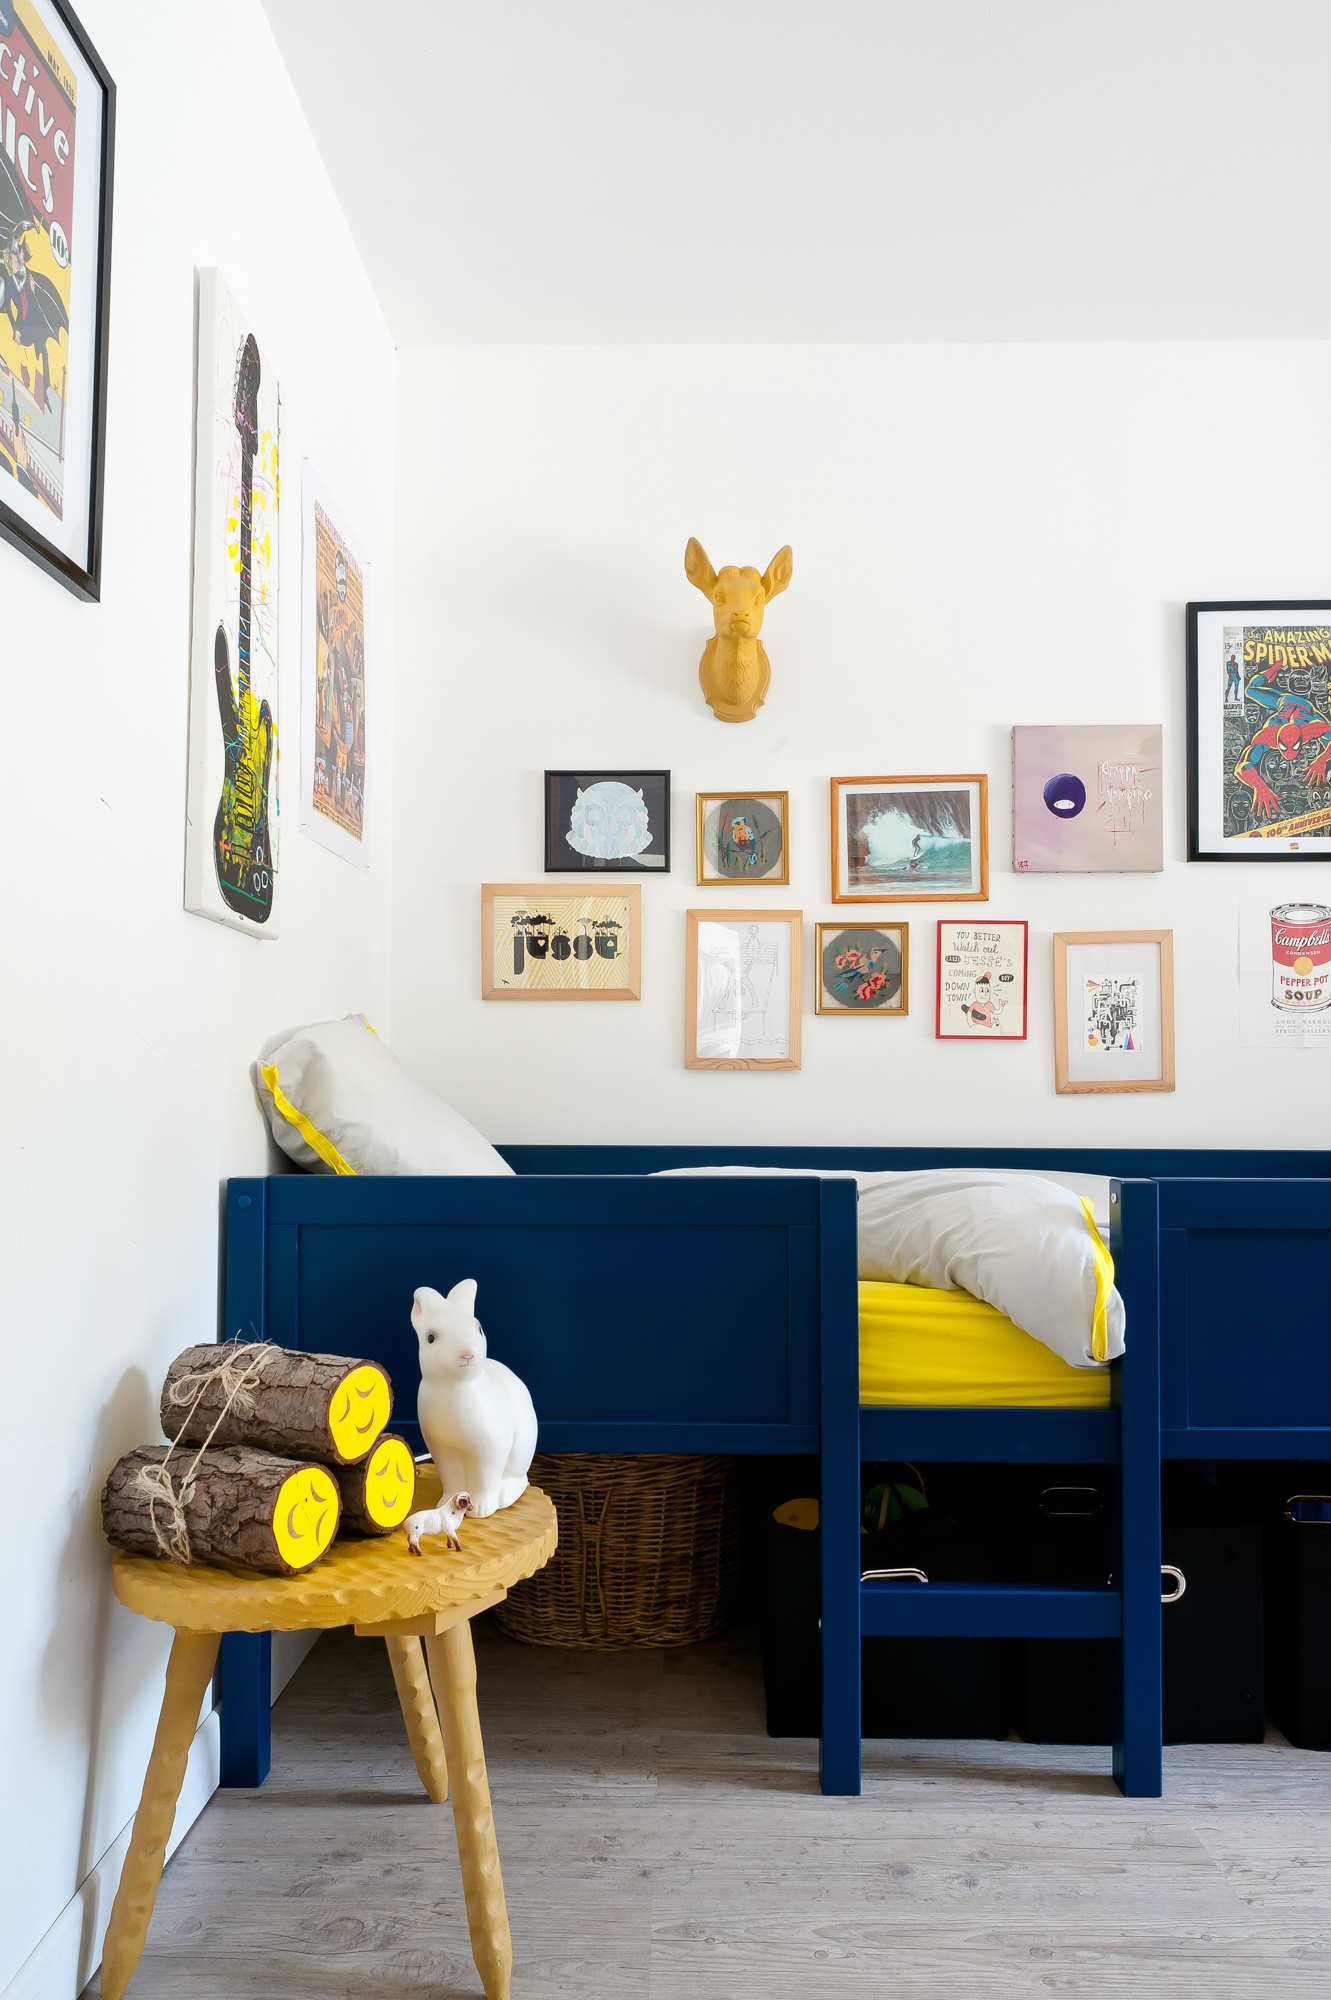 10 Amazing Kids Room Ideas: 10 Excellently Eclectic Kids Rooms